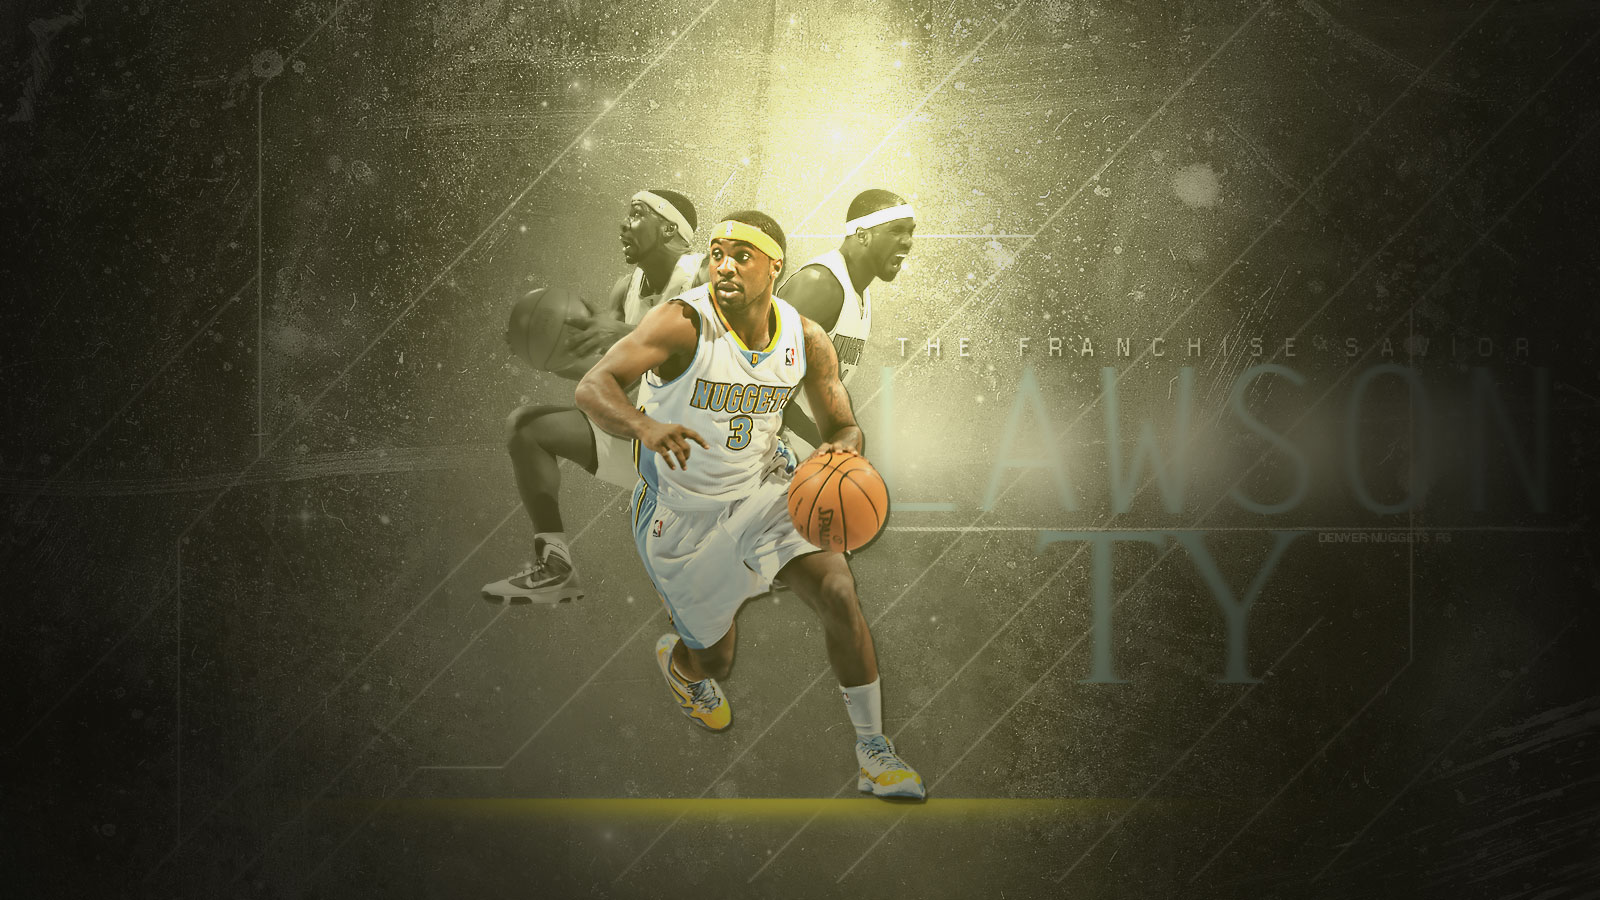 http://www.basketwallpapers.com/Images-11/Ty-Lawson-Denver-Nuggets-1600x900-Wallpaper-BasketWallpapers.com-.jpg